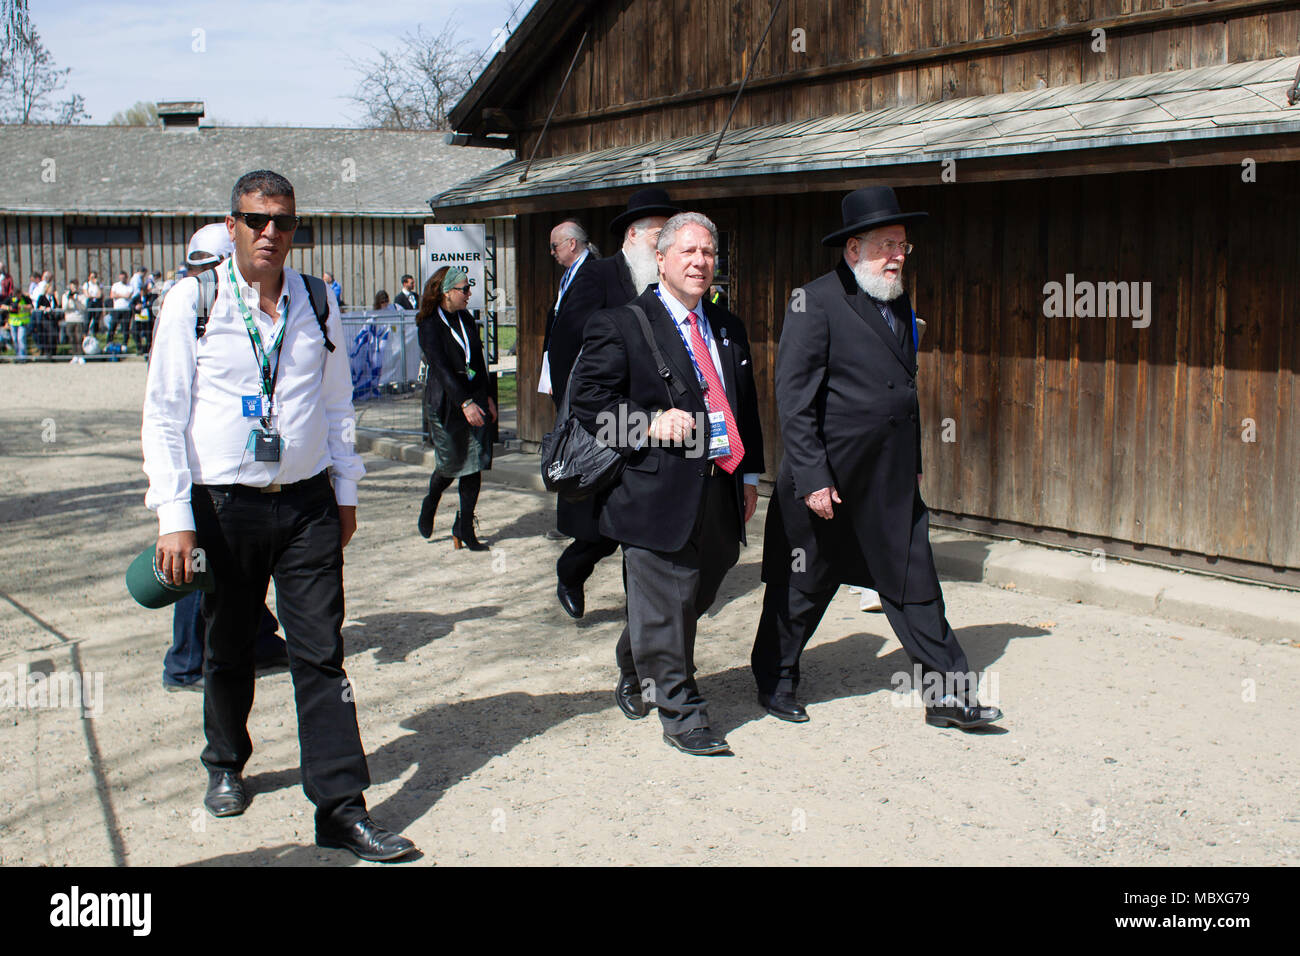 Oswiecim, Poland. 12th Apr 2018. March of the Living. An international event in which Jews from various countries, mainly students and students, visit the Holocaust sites that the Germans created during the war in the occupied Polish territories. Thanks to the participation in the March, young people will also learn about the history of Polish Jews, they also meet with Polish peers and Polish Righteous Among the Nations. Credit: Slawomir Kowalewski/Alamy Live News Stock Photo